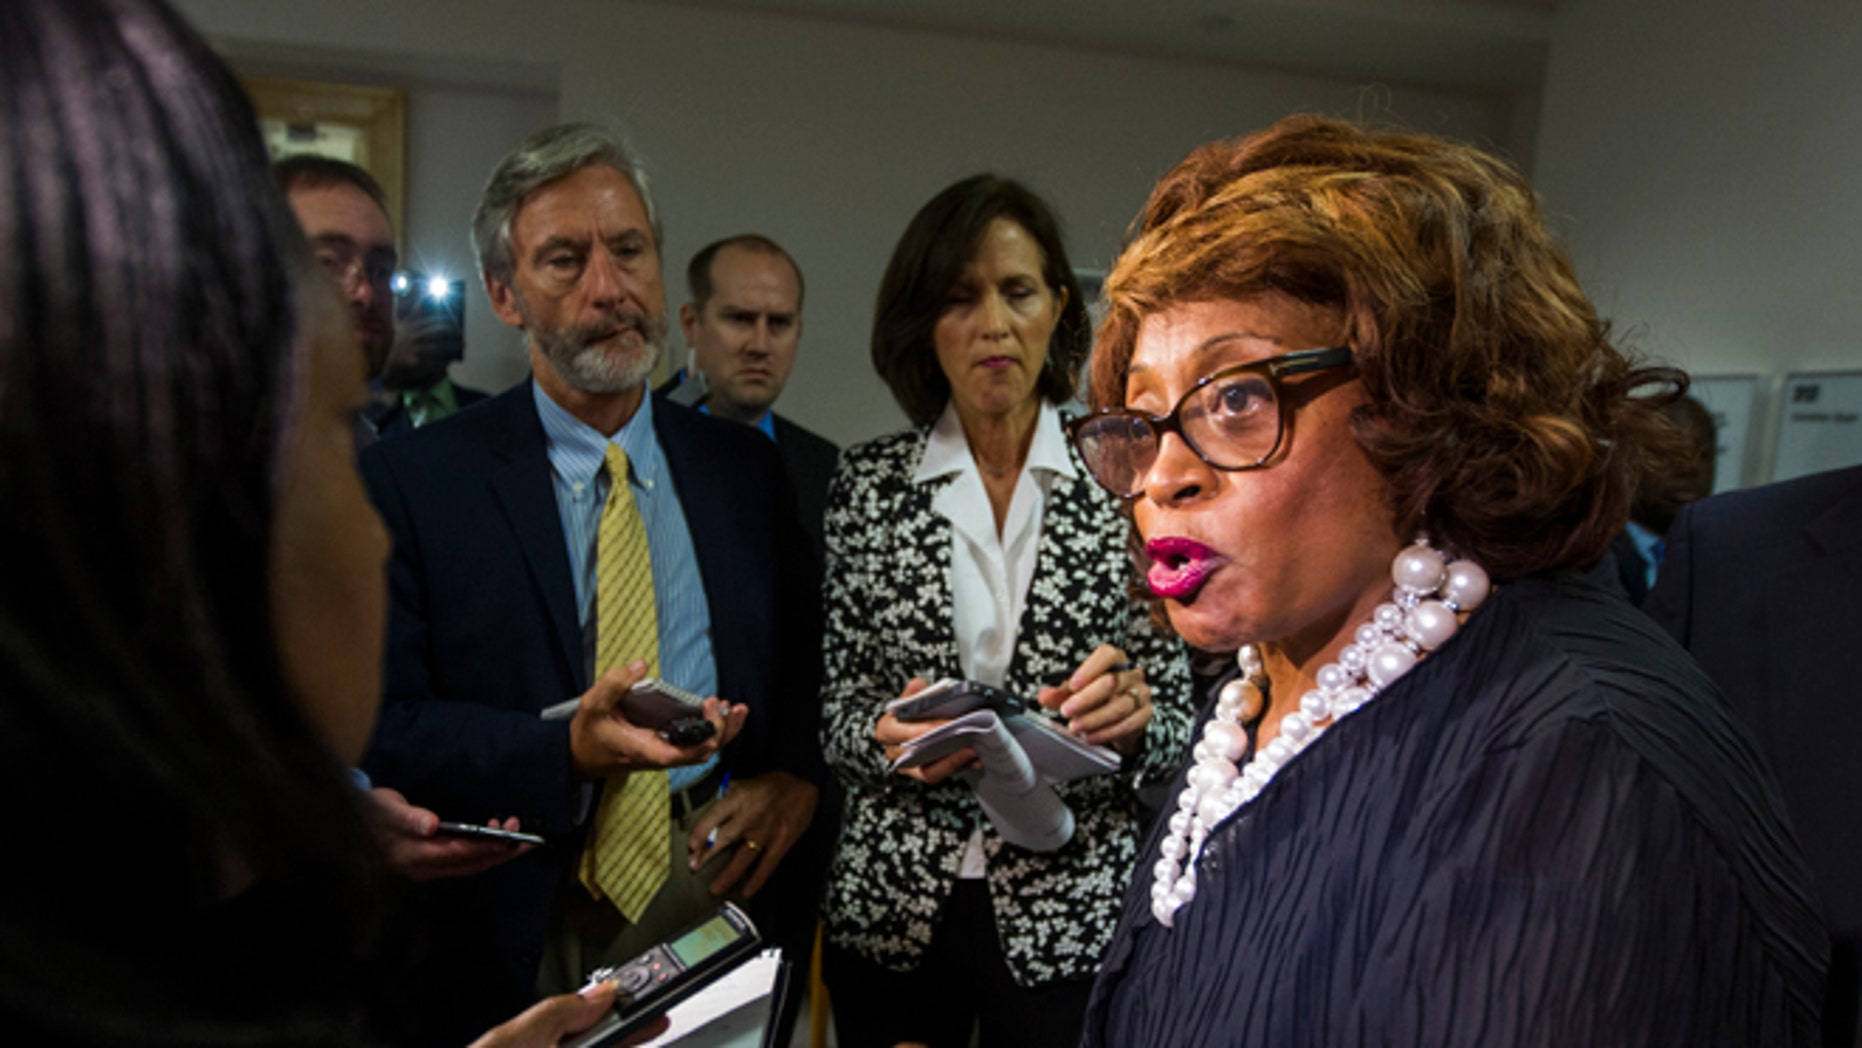 In this Aug. 13, 2015 file photo, Rep. Corrine Brown, D-Fla. talks with the press in Tallahassee, Fla.